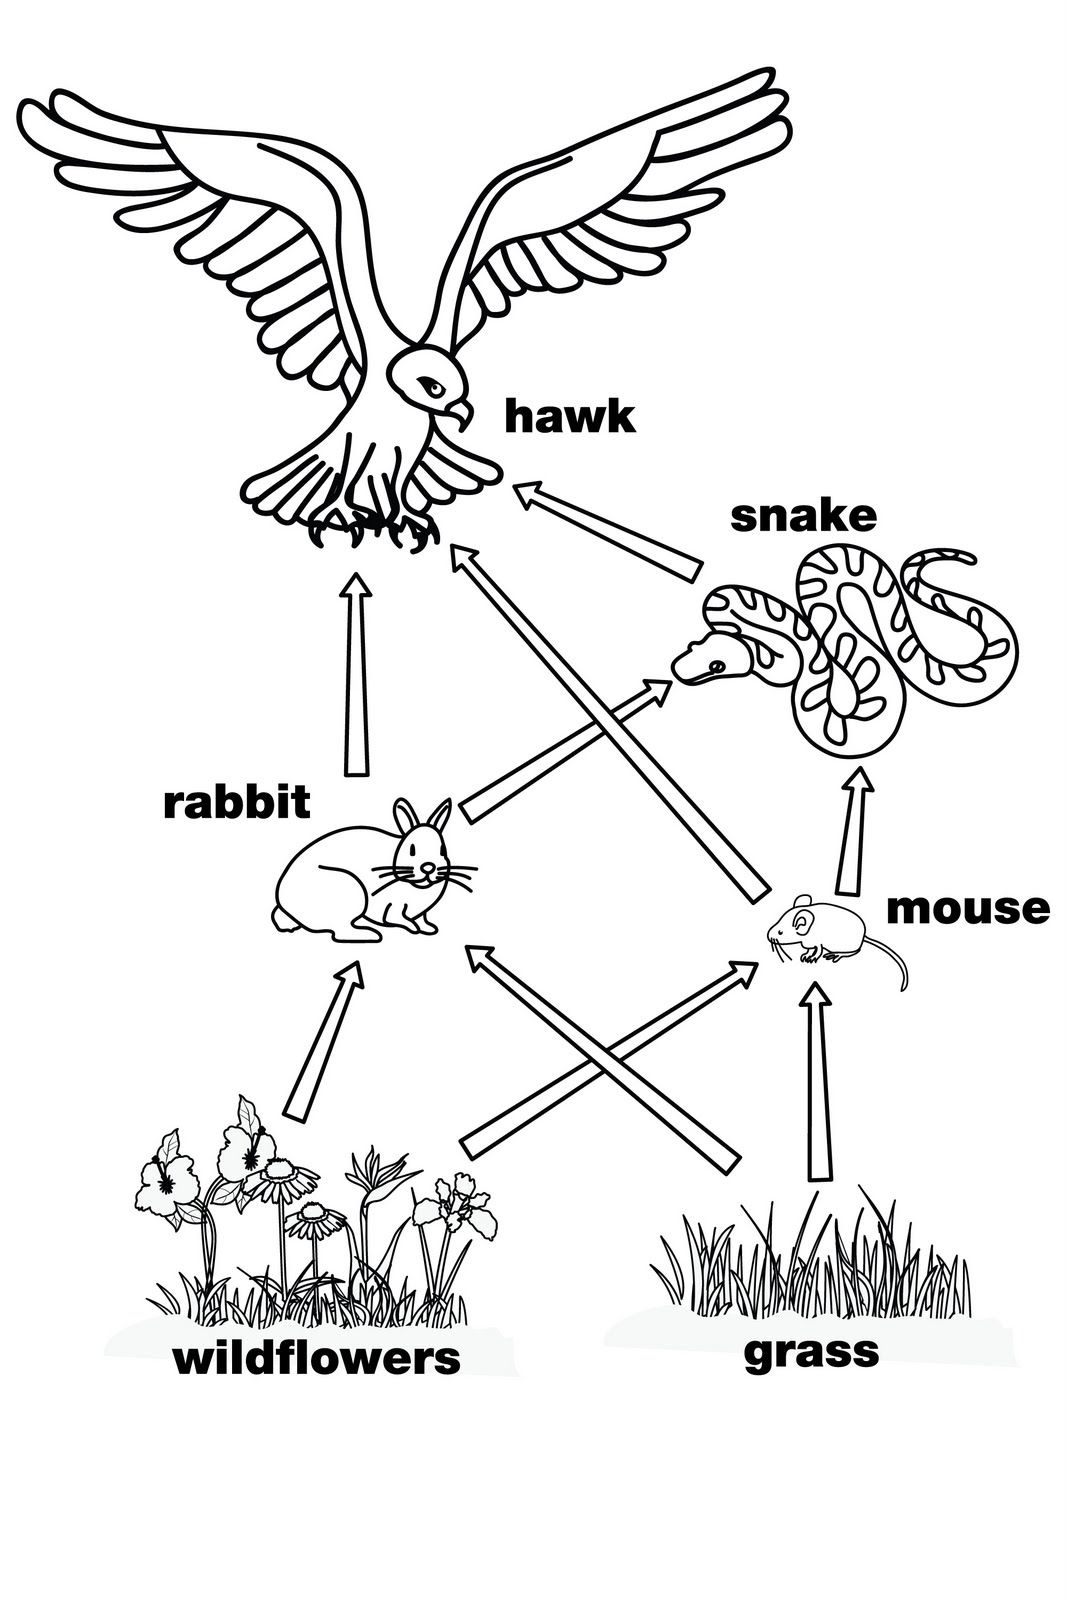 Food Web Coloring Pages